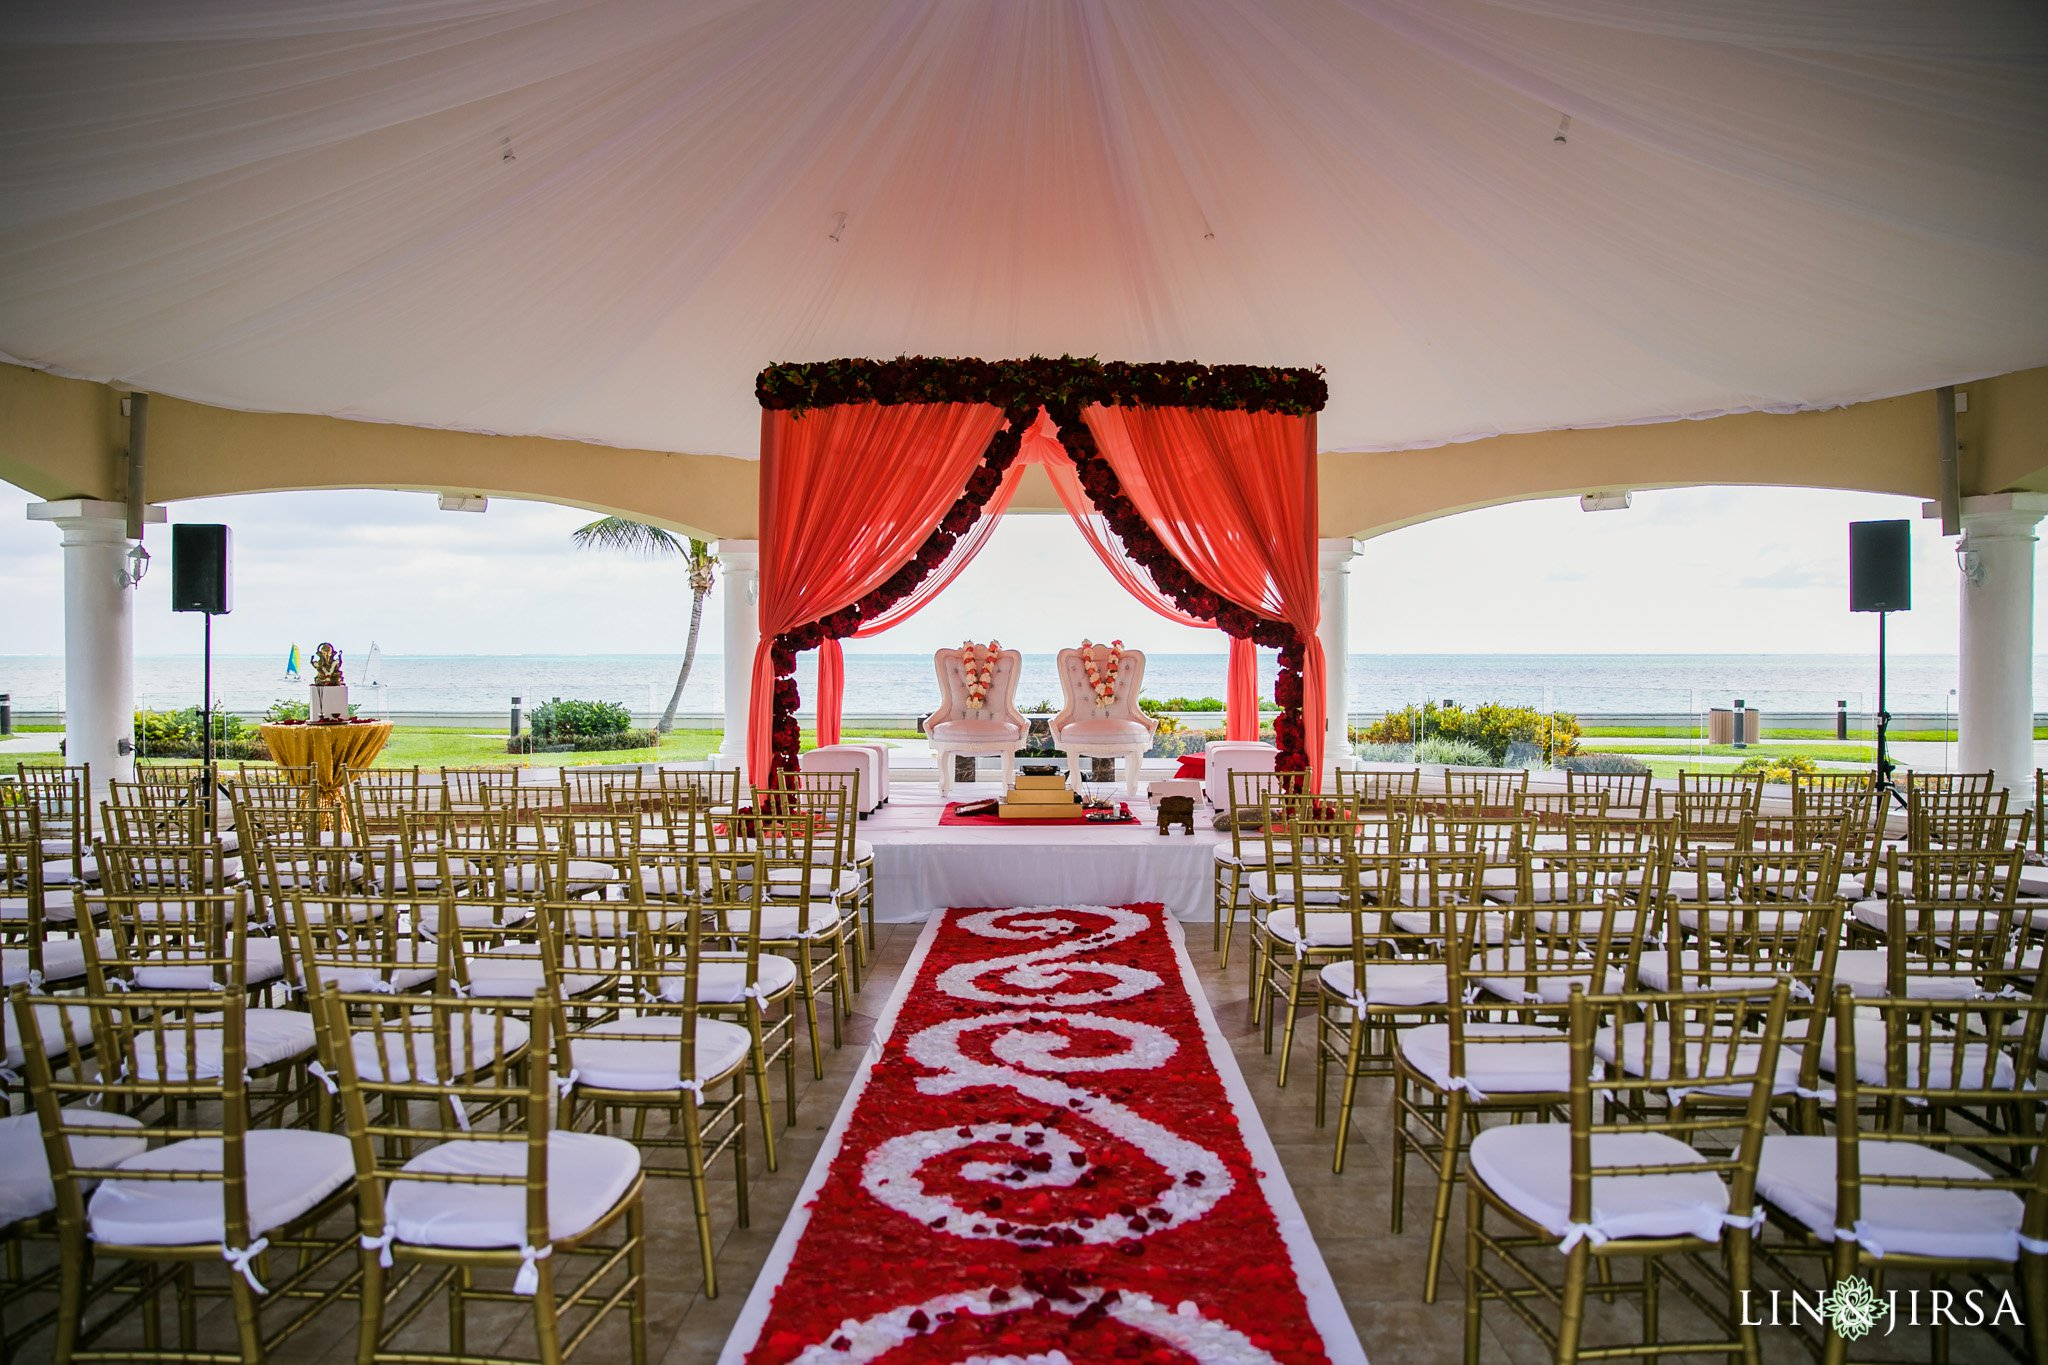 Shaadi Destinations Indian Wedding Packages At Moon Palace Resort Indian Destination Weddings In Mexico And The Caribbean